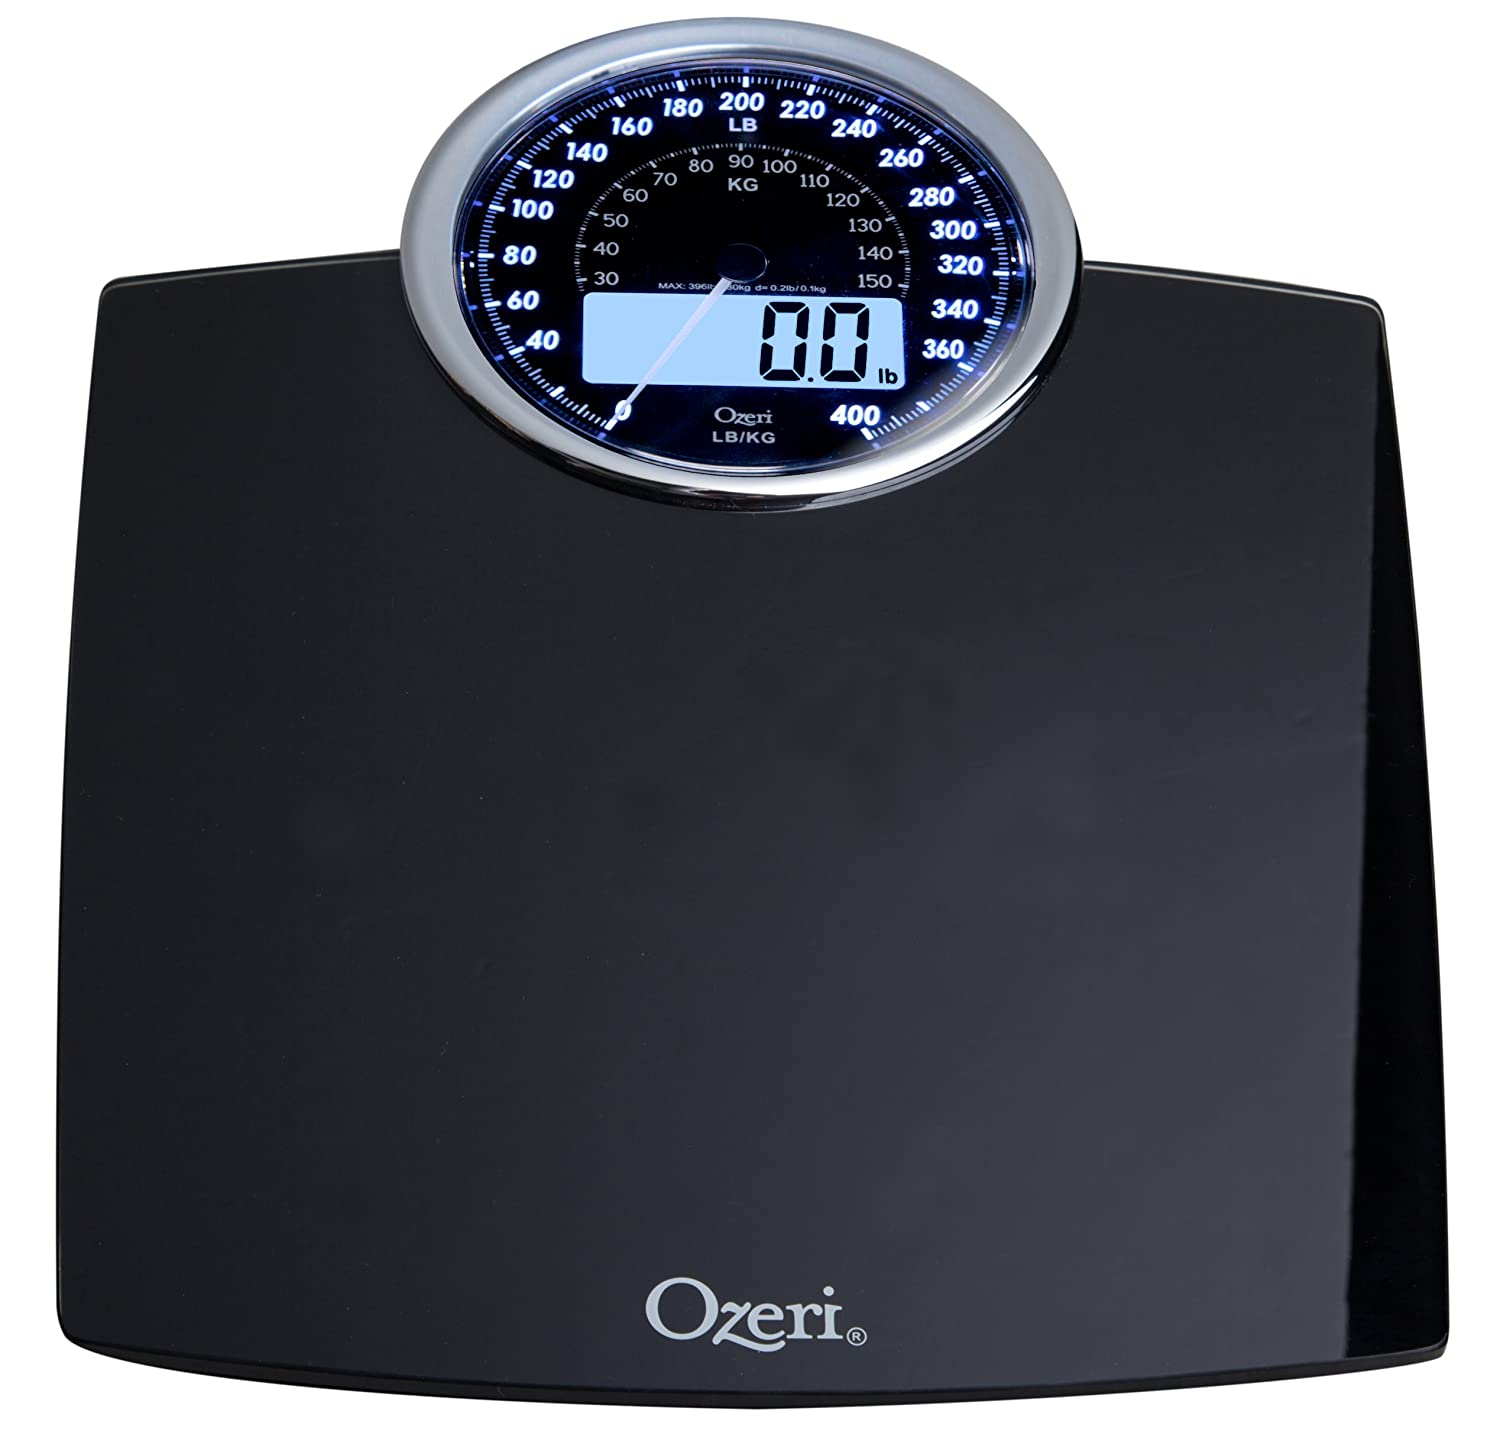 Amazon scale bathroom - Amazon Com Ozeri Zb19 Rev Digital Bathroom Scale With Electro Mechanical Weight Dial Black Health Personal Care